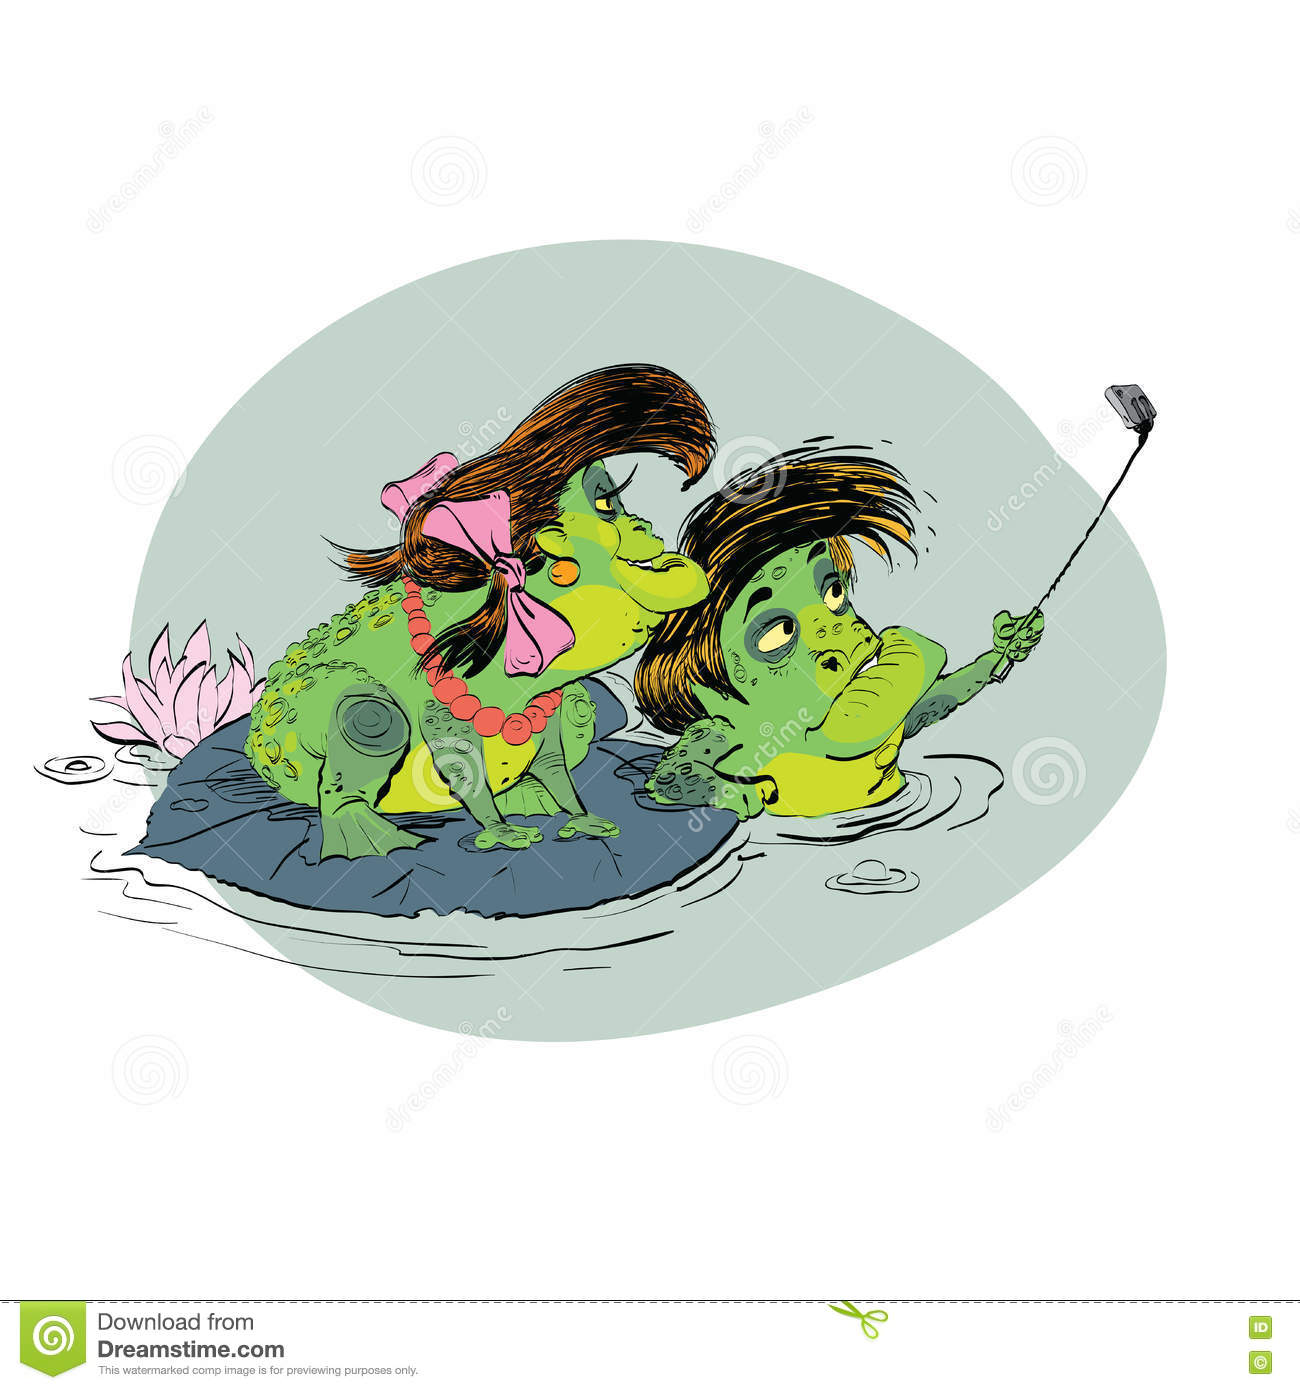 Selfie De Grenouille De Femme Dhomme De Couples Illustration De